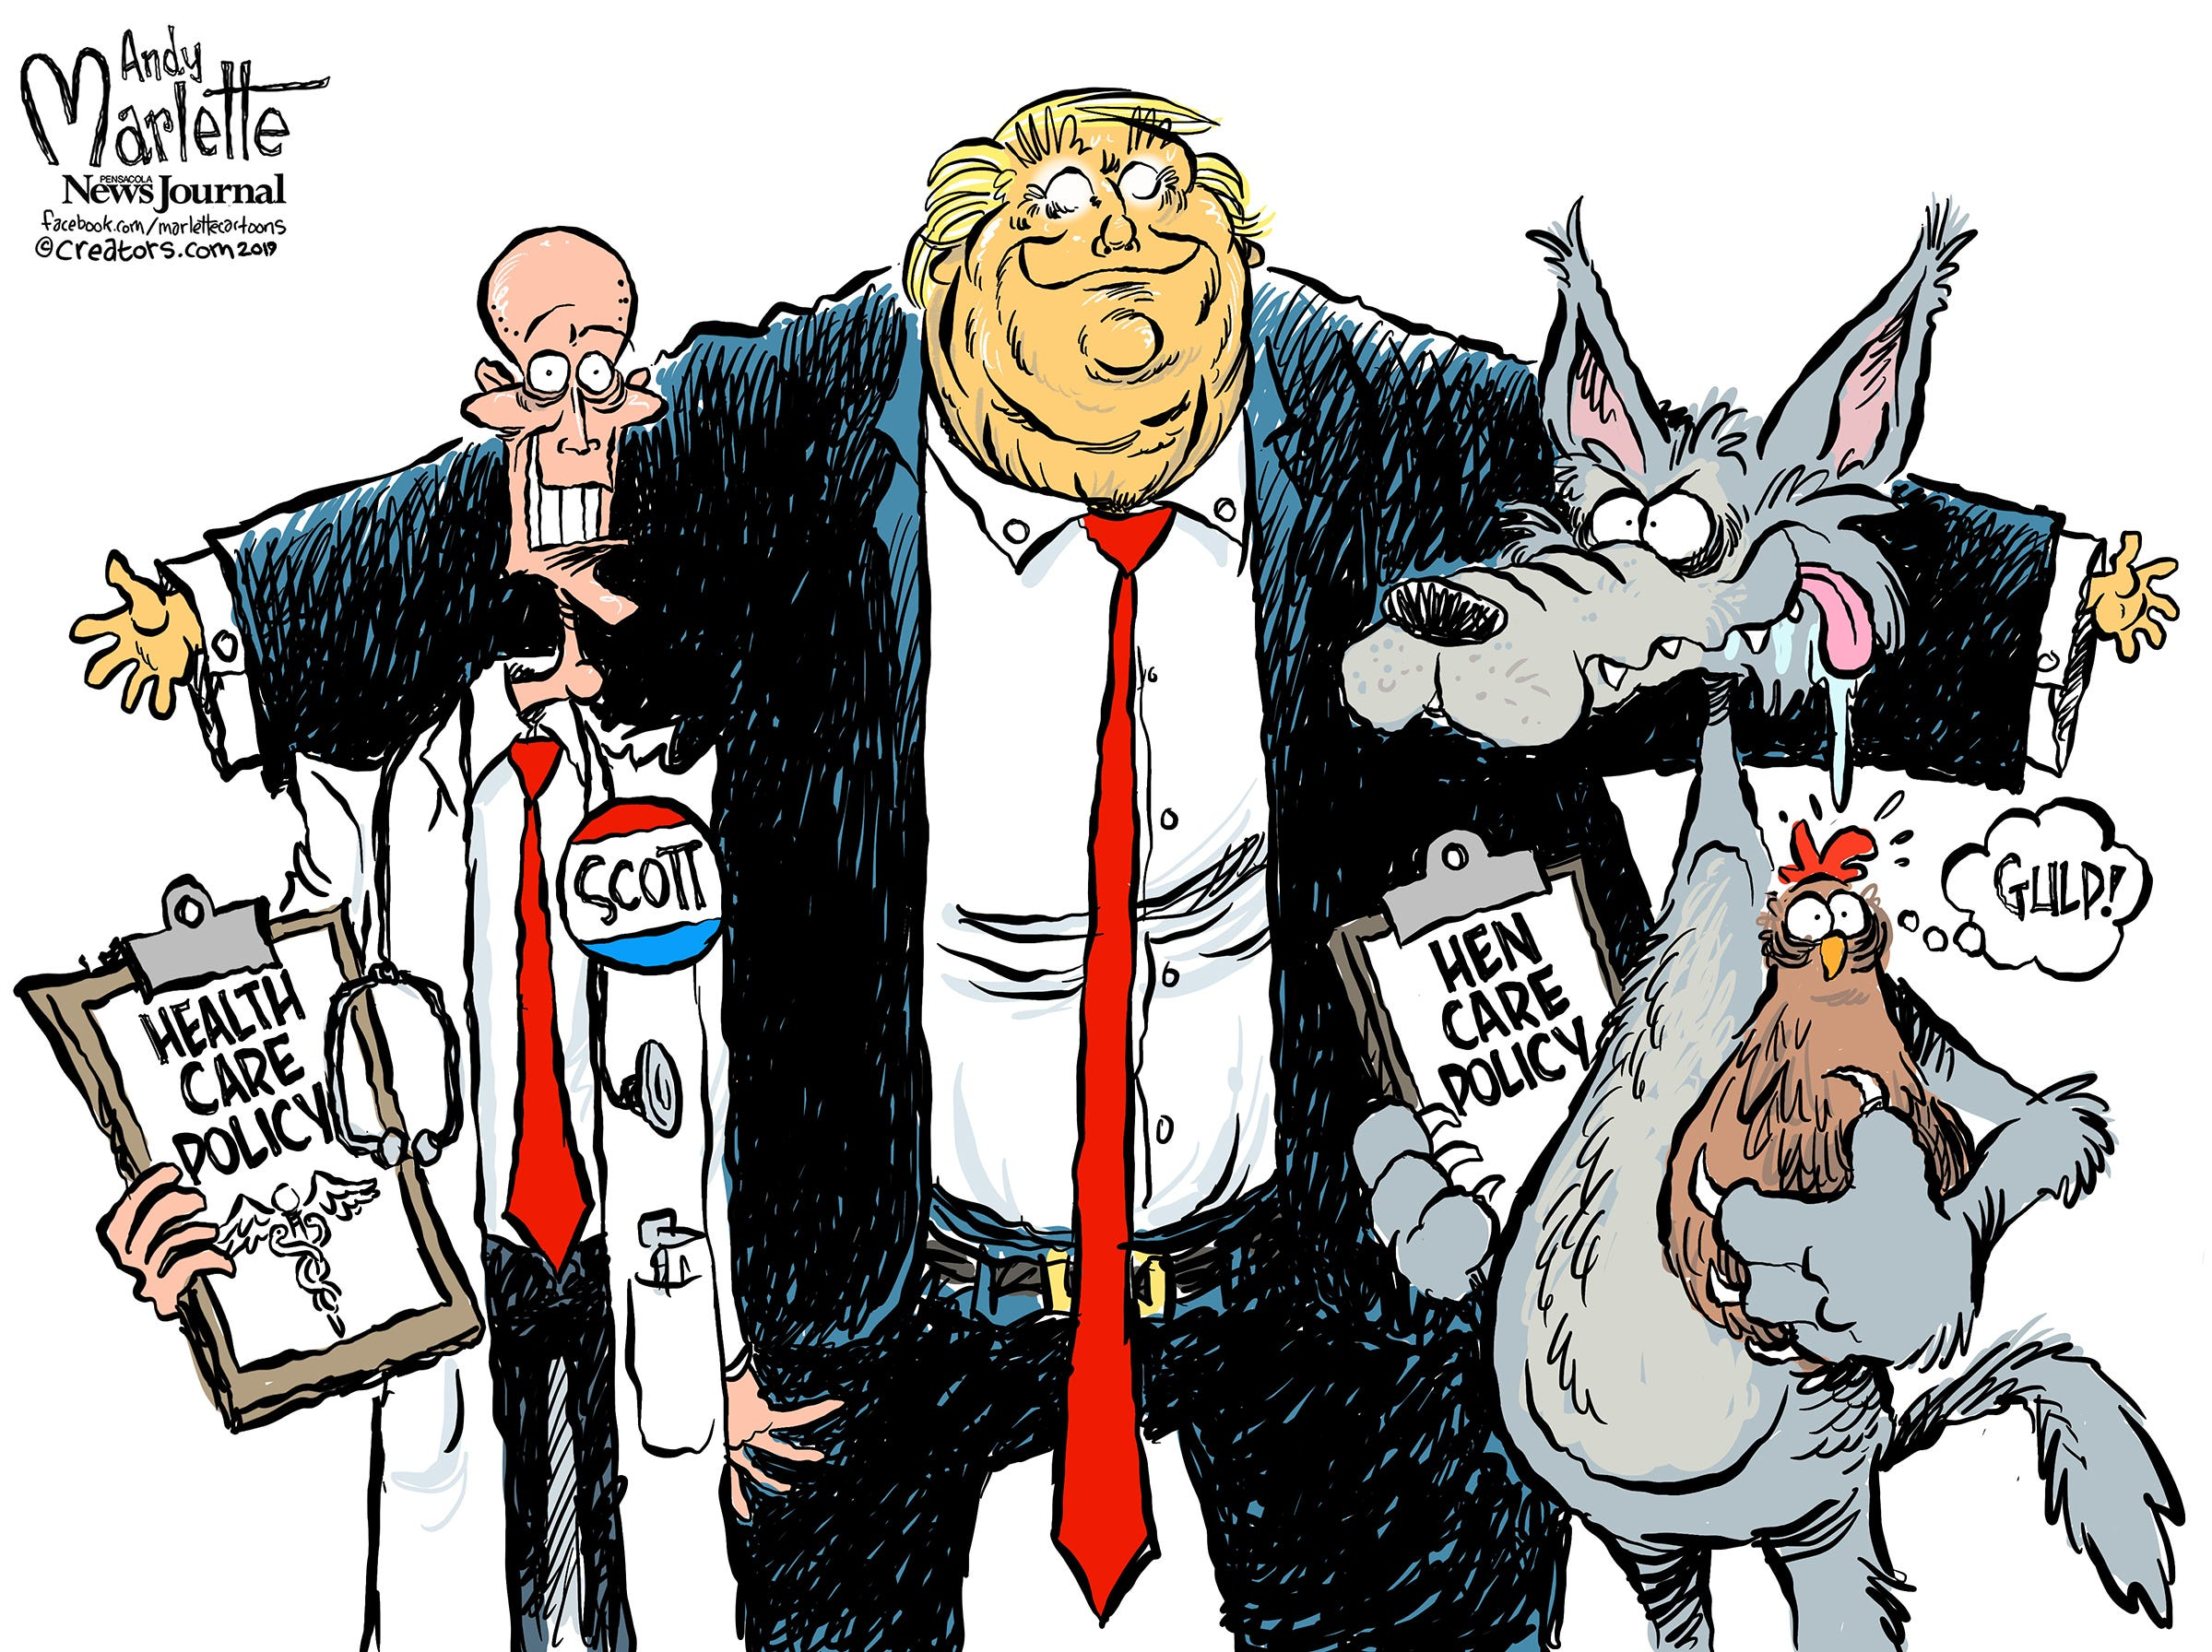 Editorial cartoons drawn by a Florida Man about Florida politics